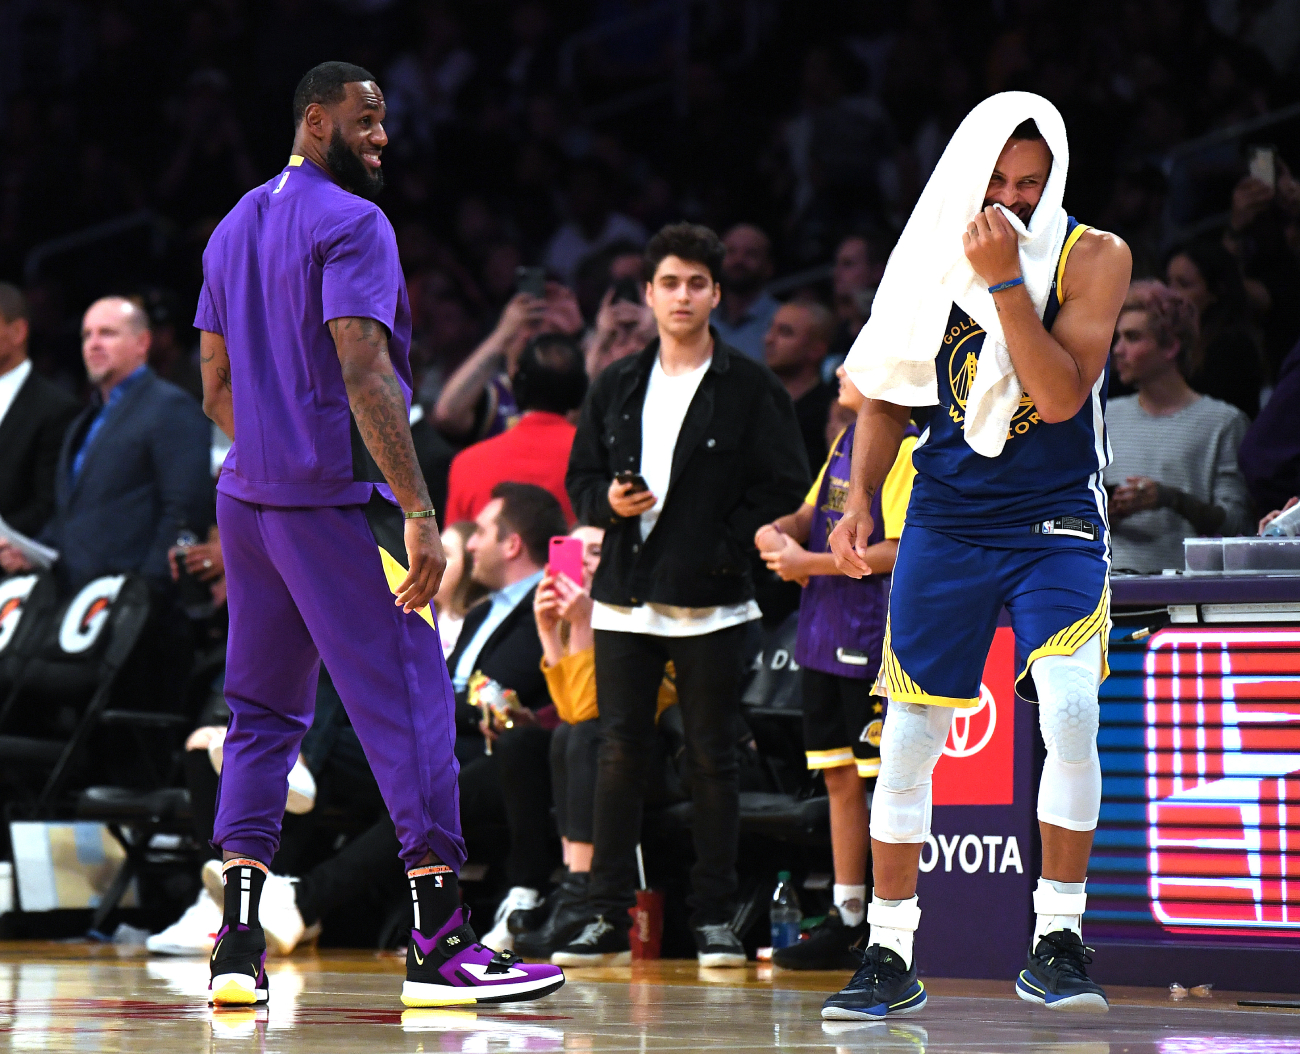 Prior to the season shutting down, Avery Bradley was a great piece for the Lakers. Now, the Golden State Warriors are trying to get him.